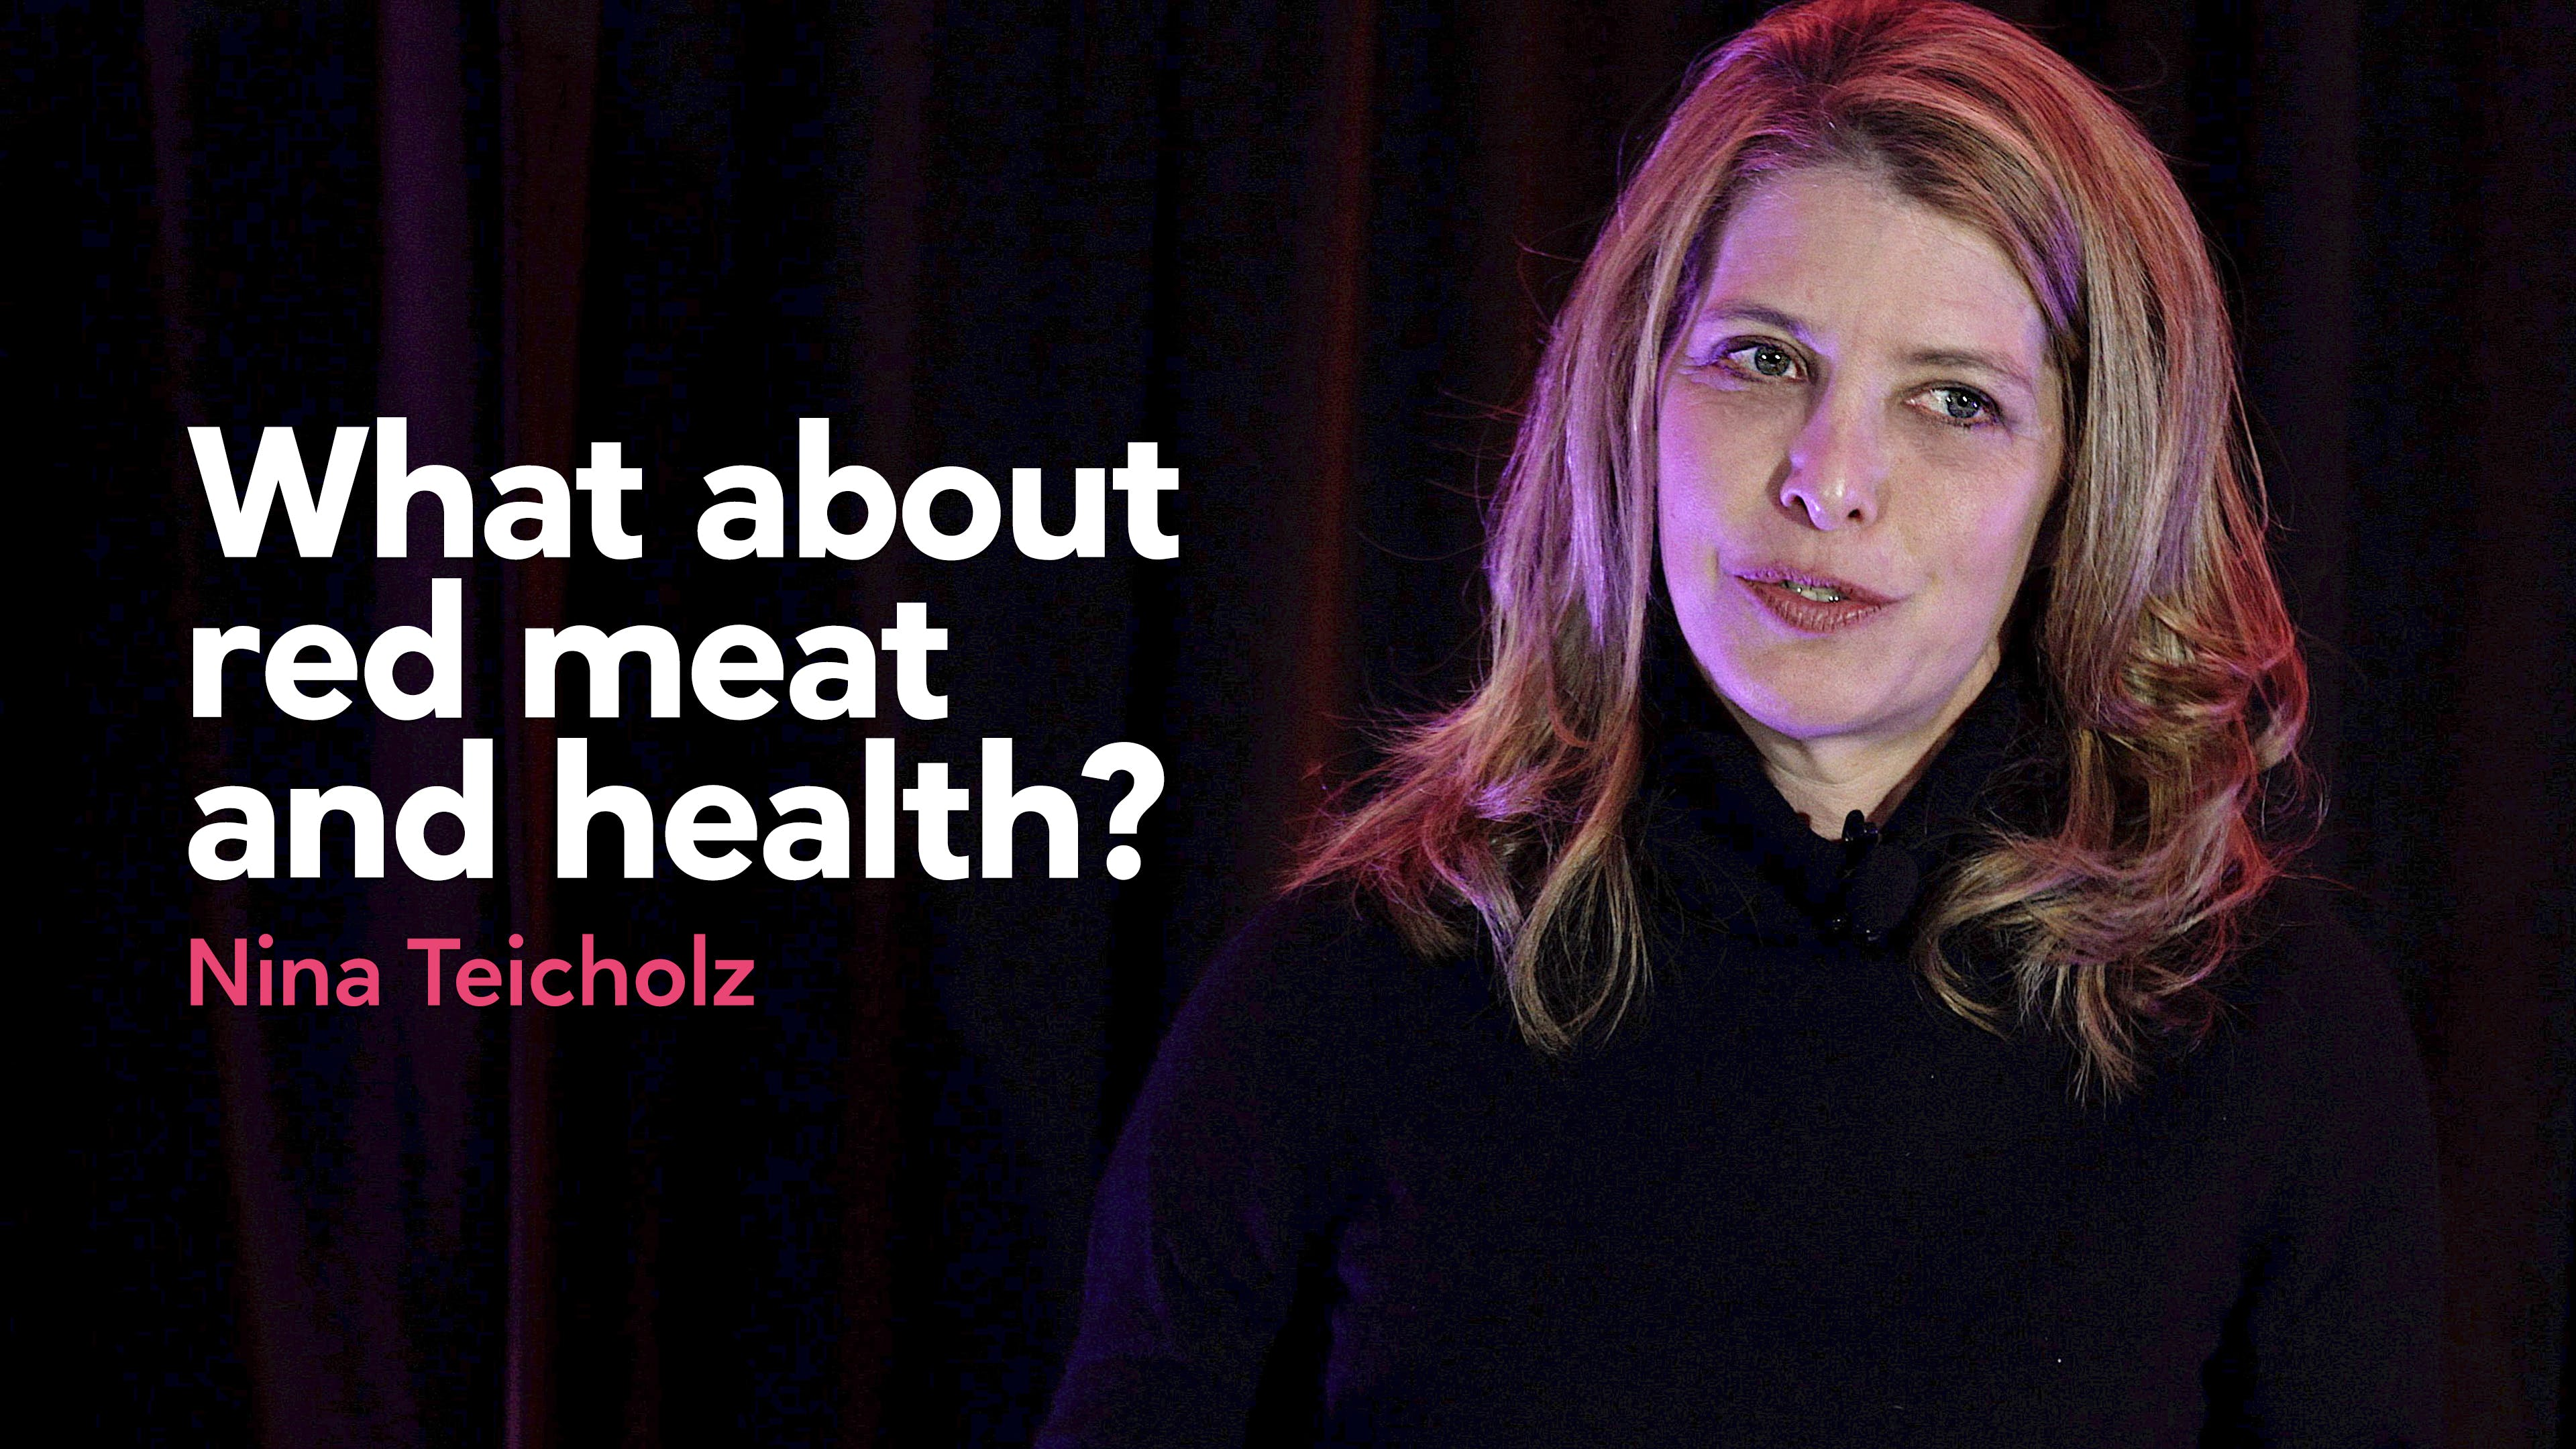 What about red meat and health?